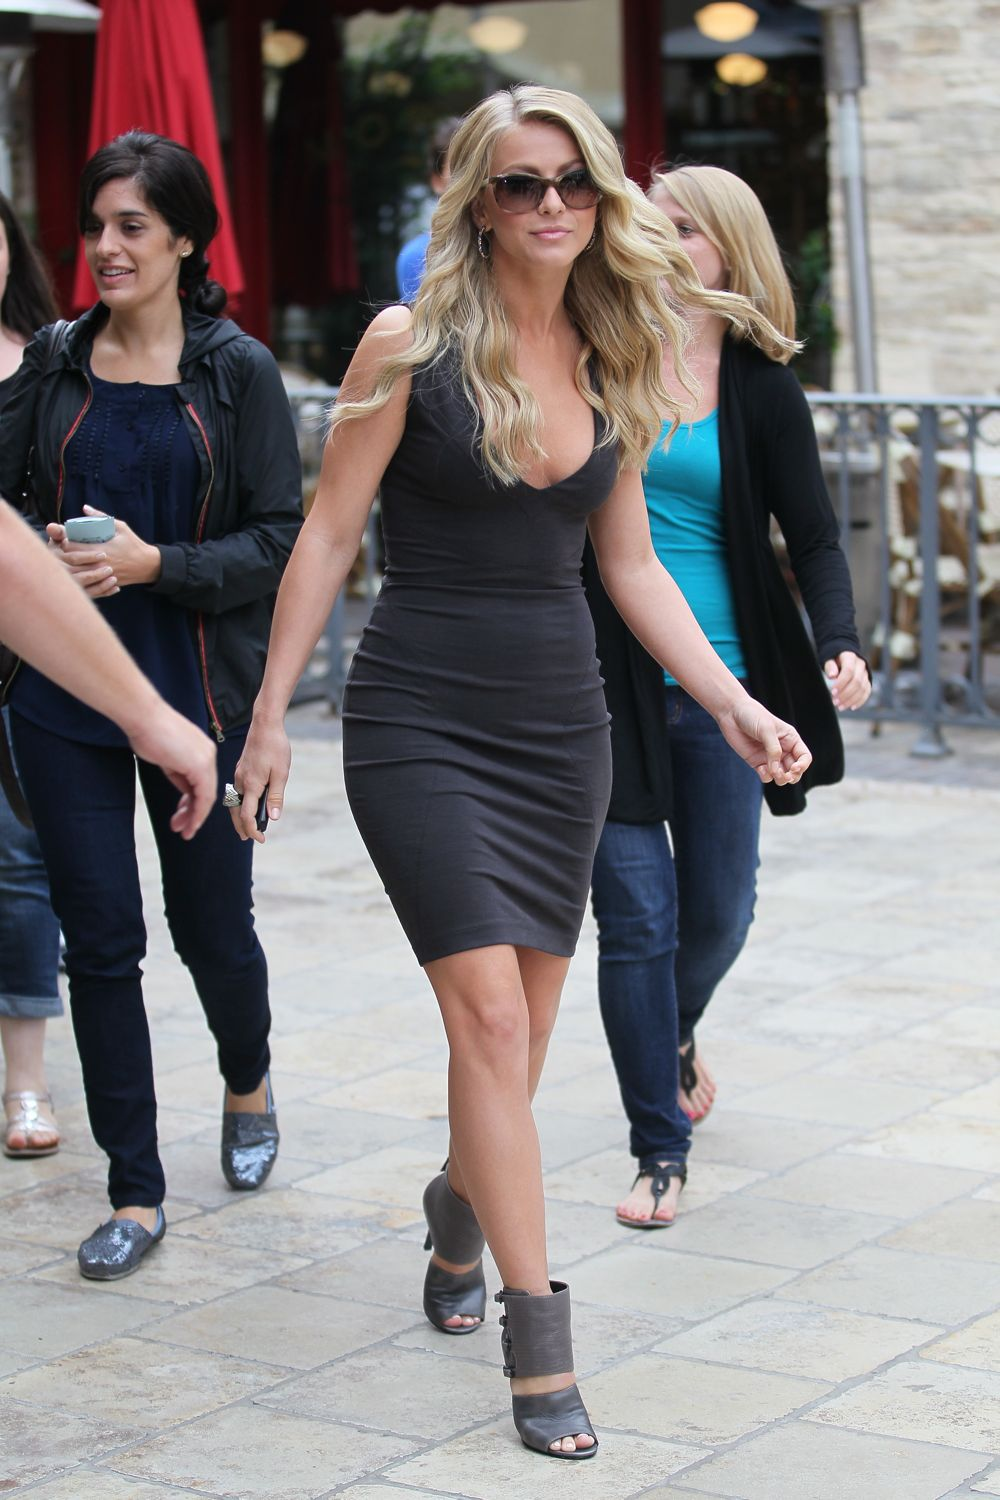 Julianne Hough Looks Beautiful In Black Mini Dress